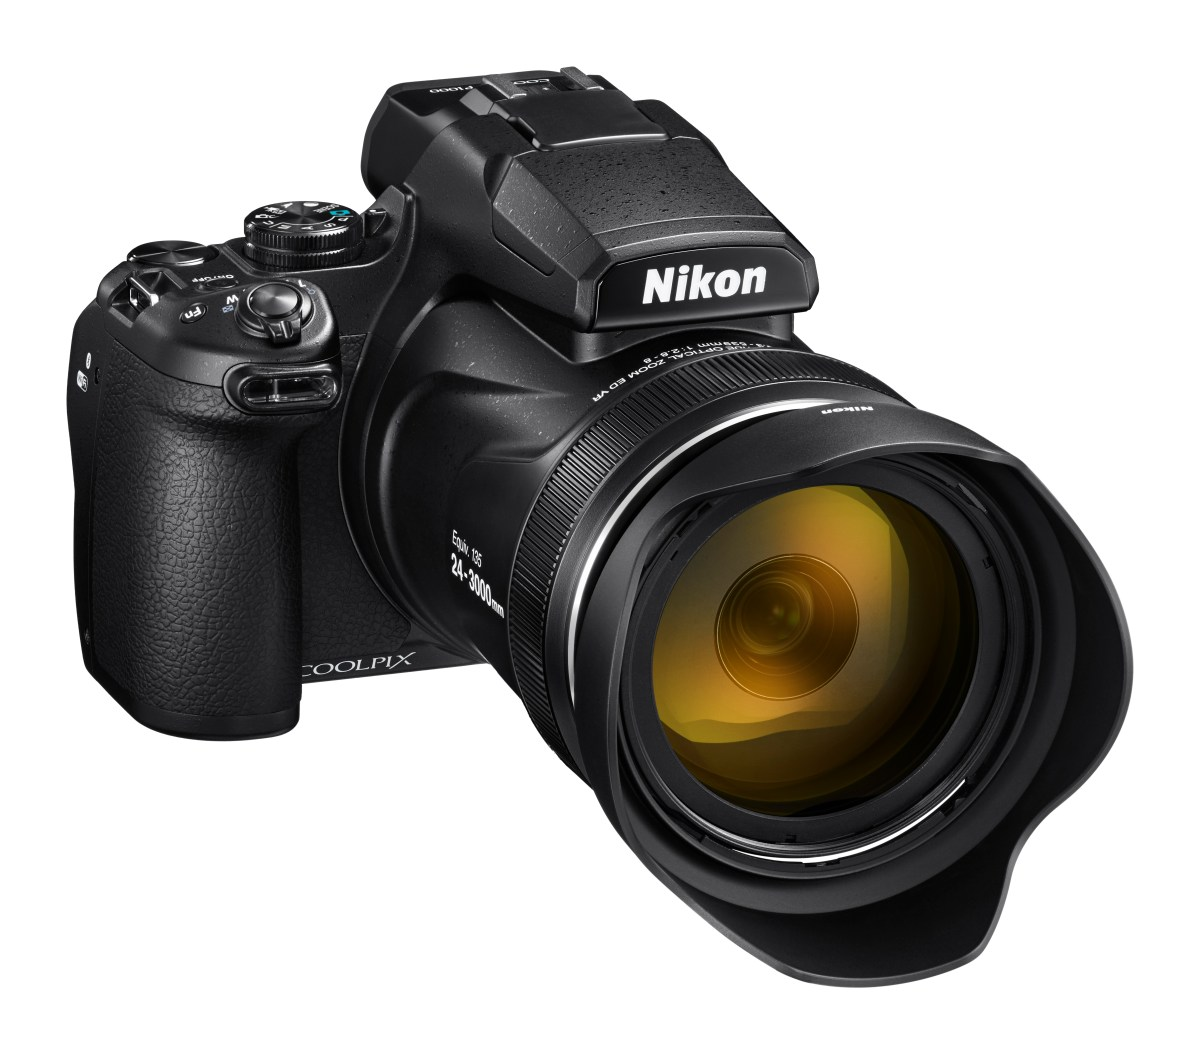 New COOLPIX P1000: NIKKOR 24-3000mm Equivalent Optical Zoom Lens Offers 125x Zoom